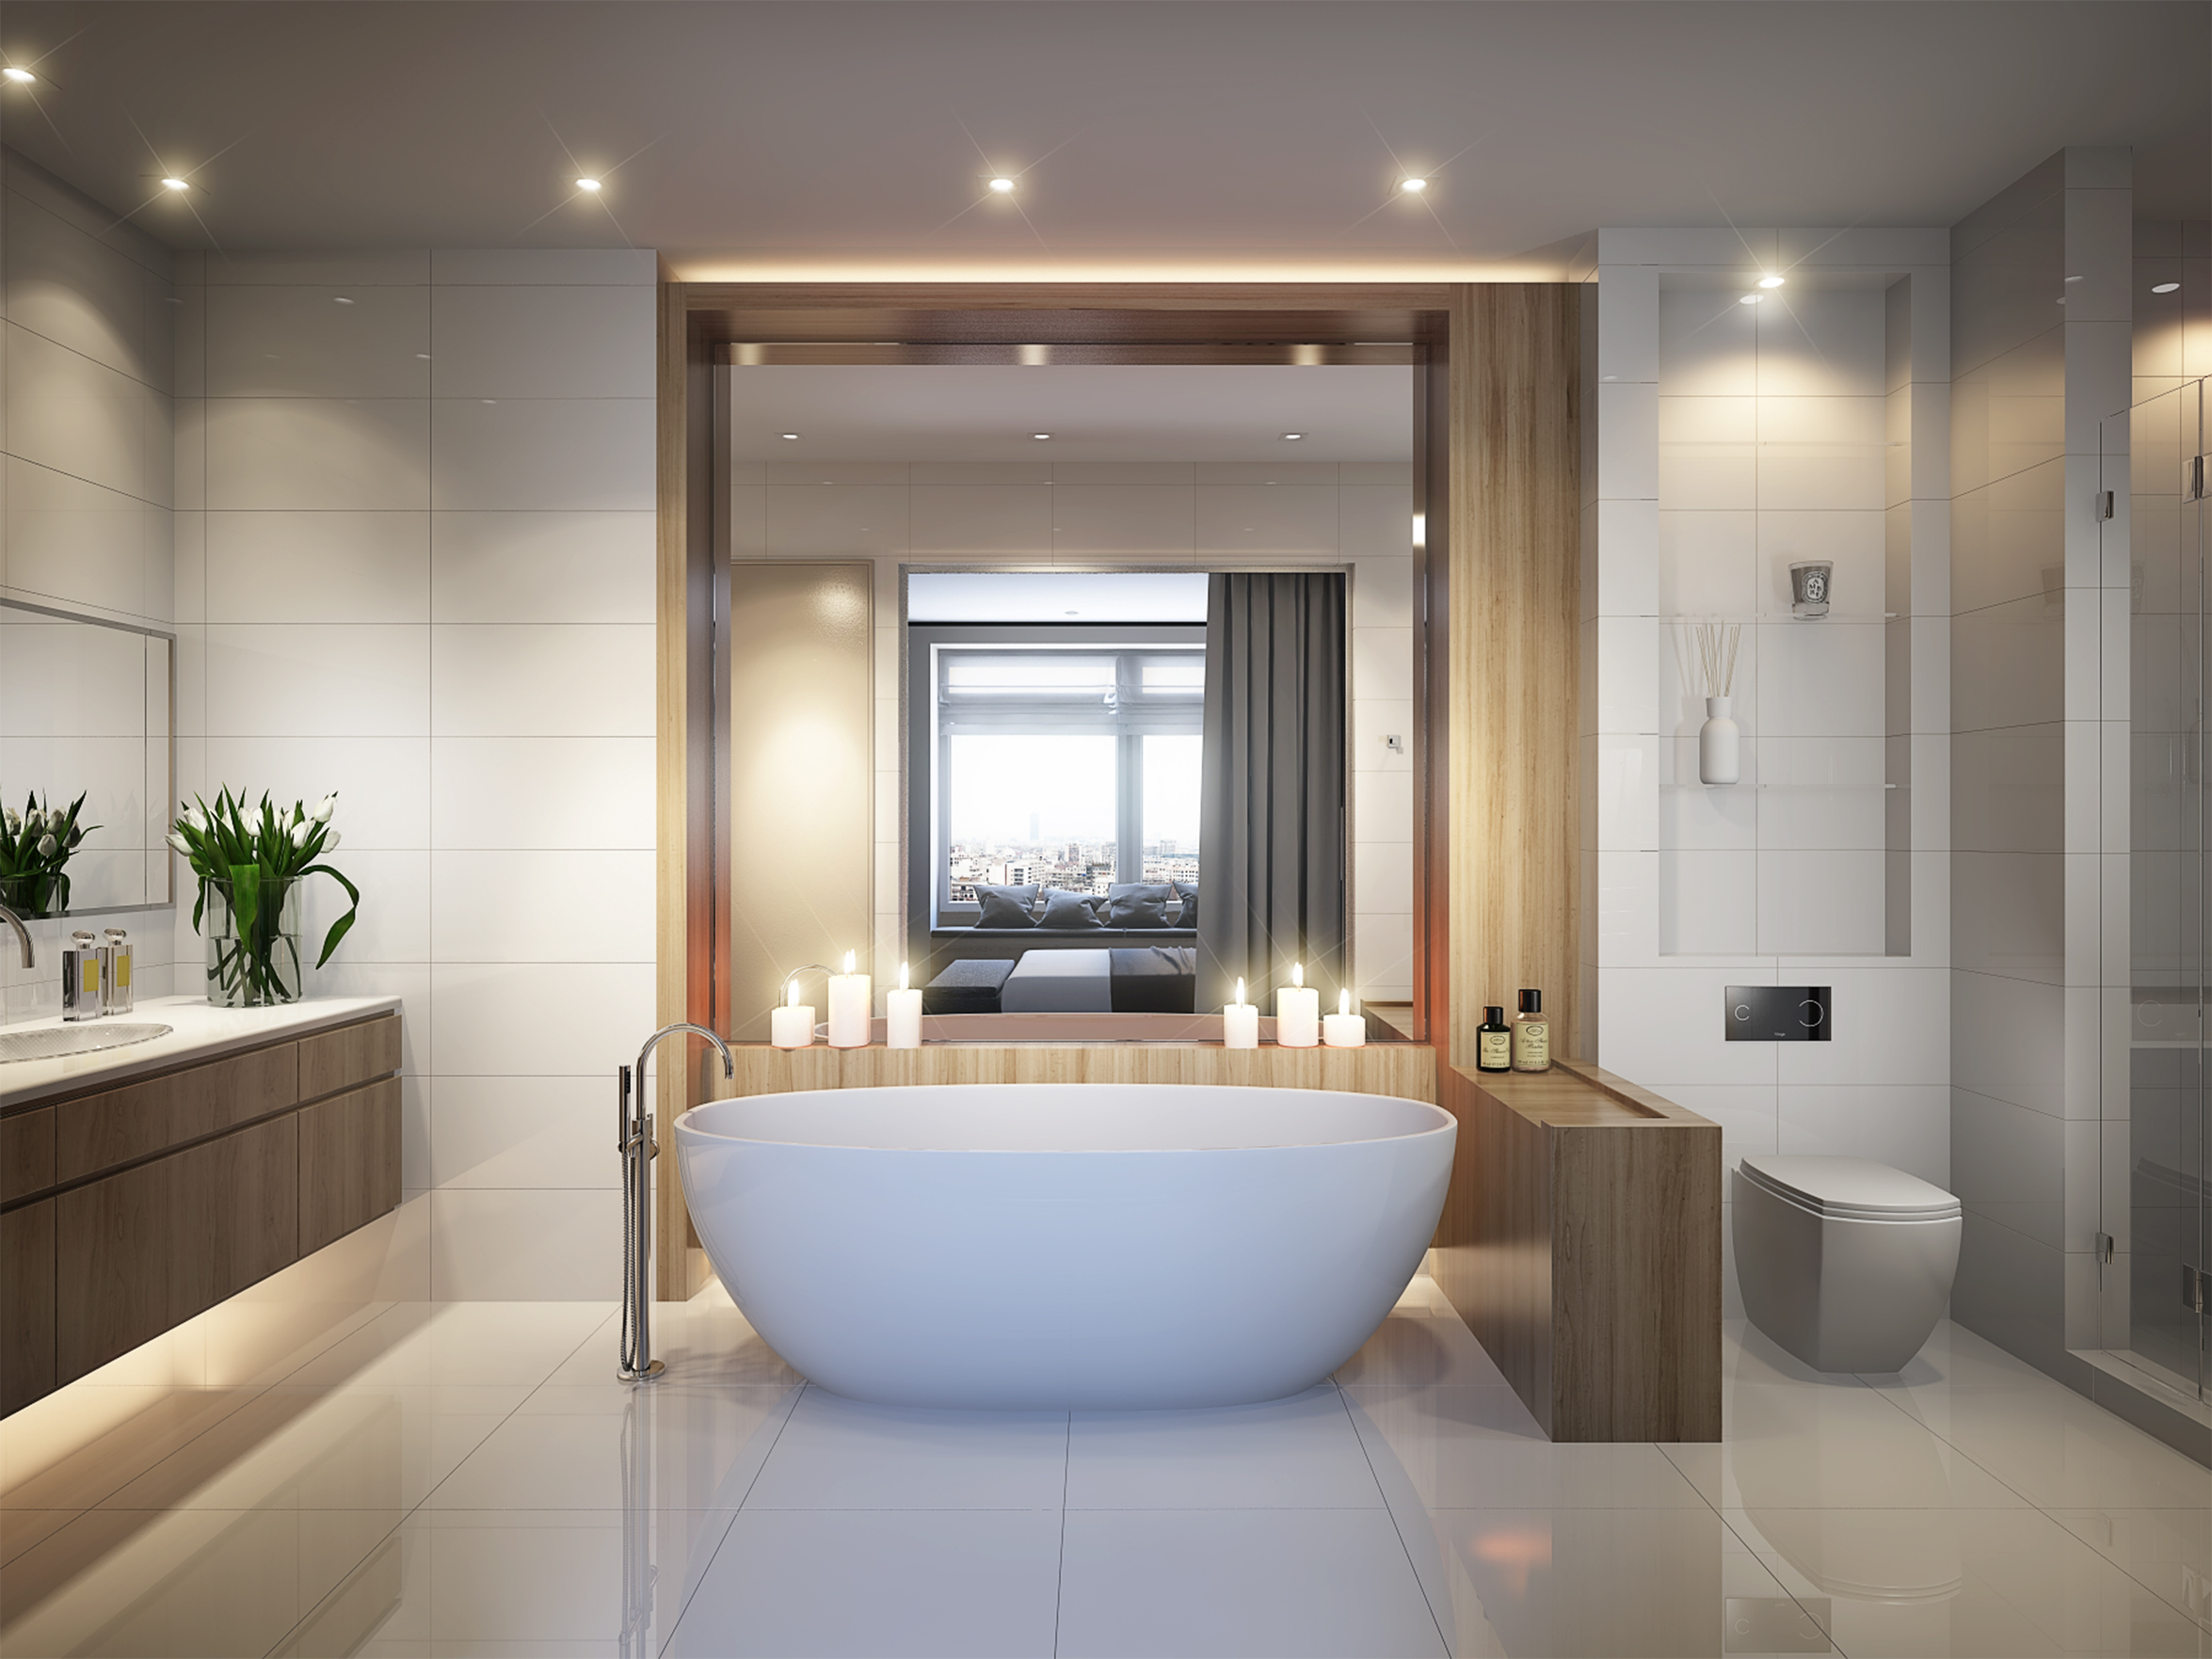 disabled wetroom, quality bathroom fleet, bathroom fleet, bath fleet, bathroom farnham, bathroom guildford, bathroom wokingham, bathroom bracknell, bathroom Crowthorne, bathroom winnersh, bathroom reading,